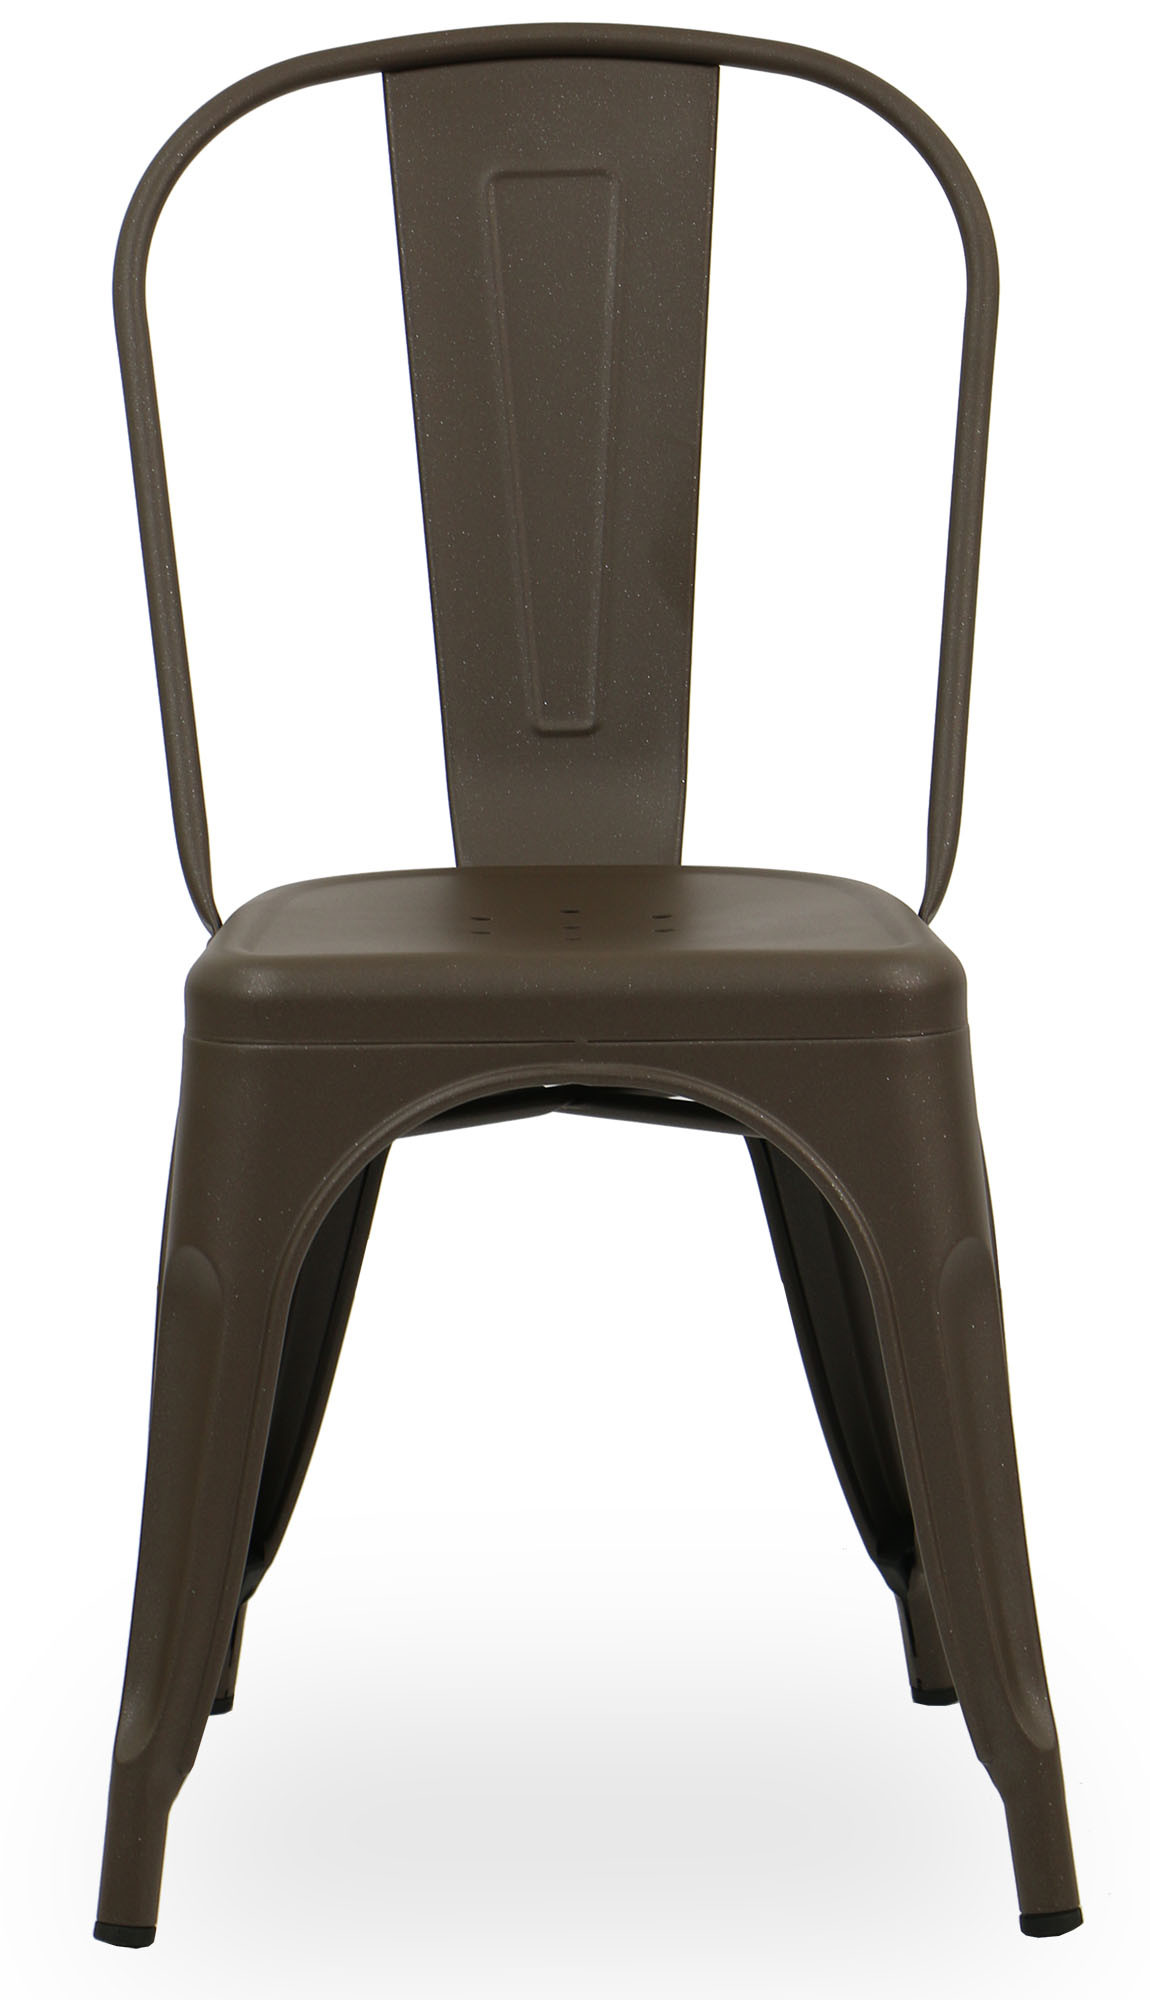 Retro Metal Chair Shinny Brown Dining Chairs Dining